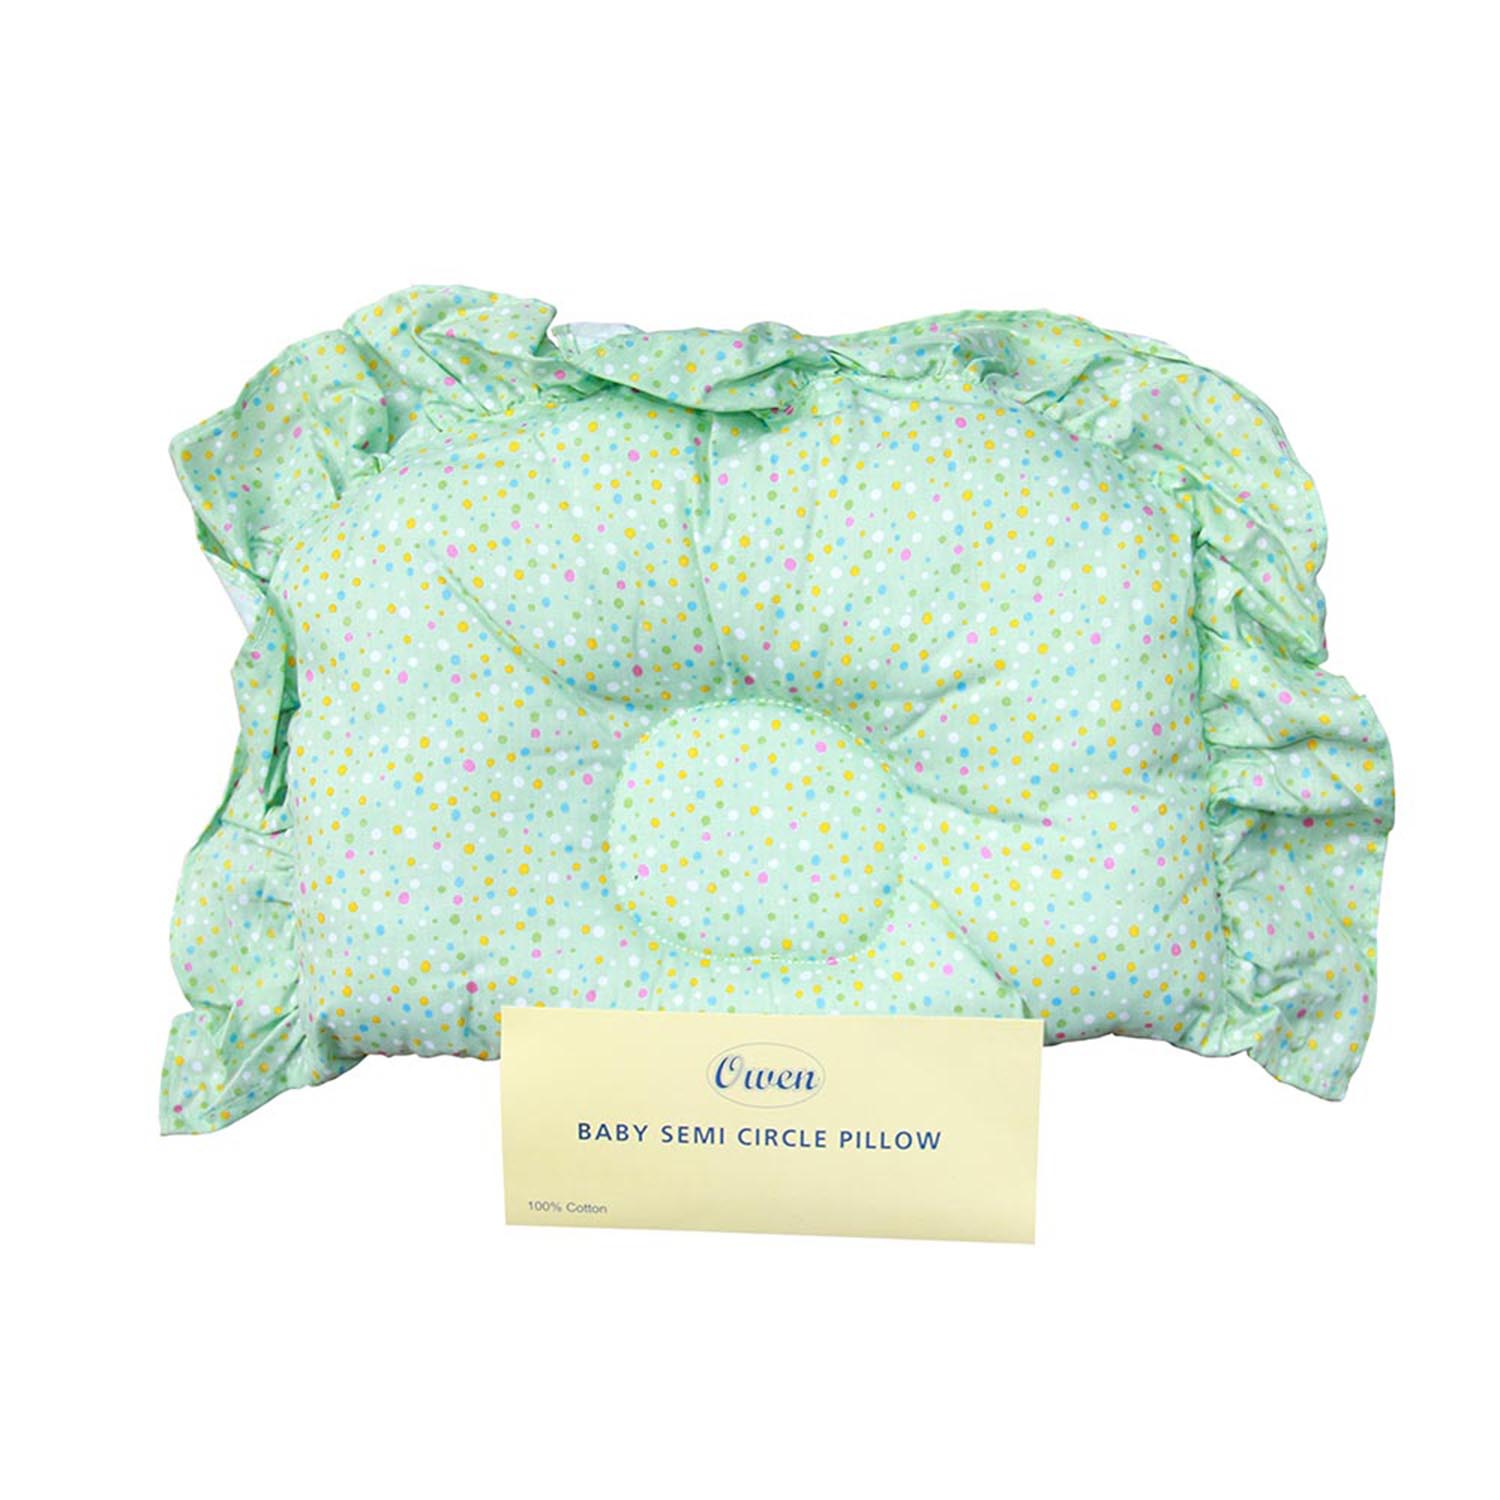 Owen Semi Circle Pillow Light Green